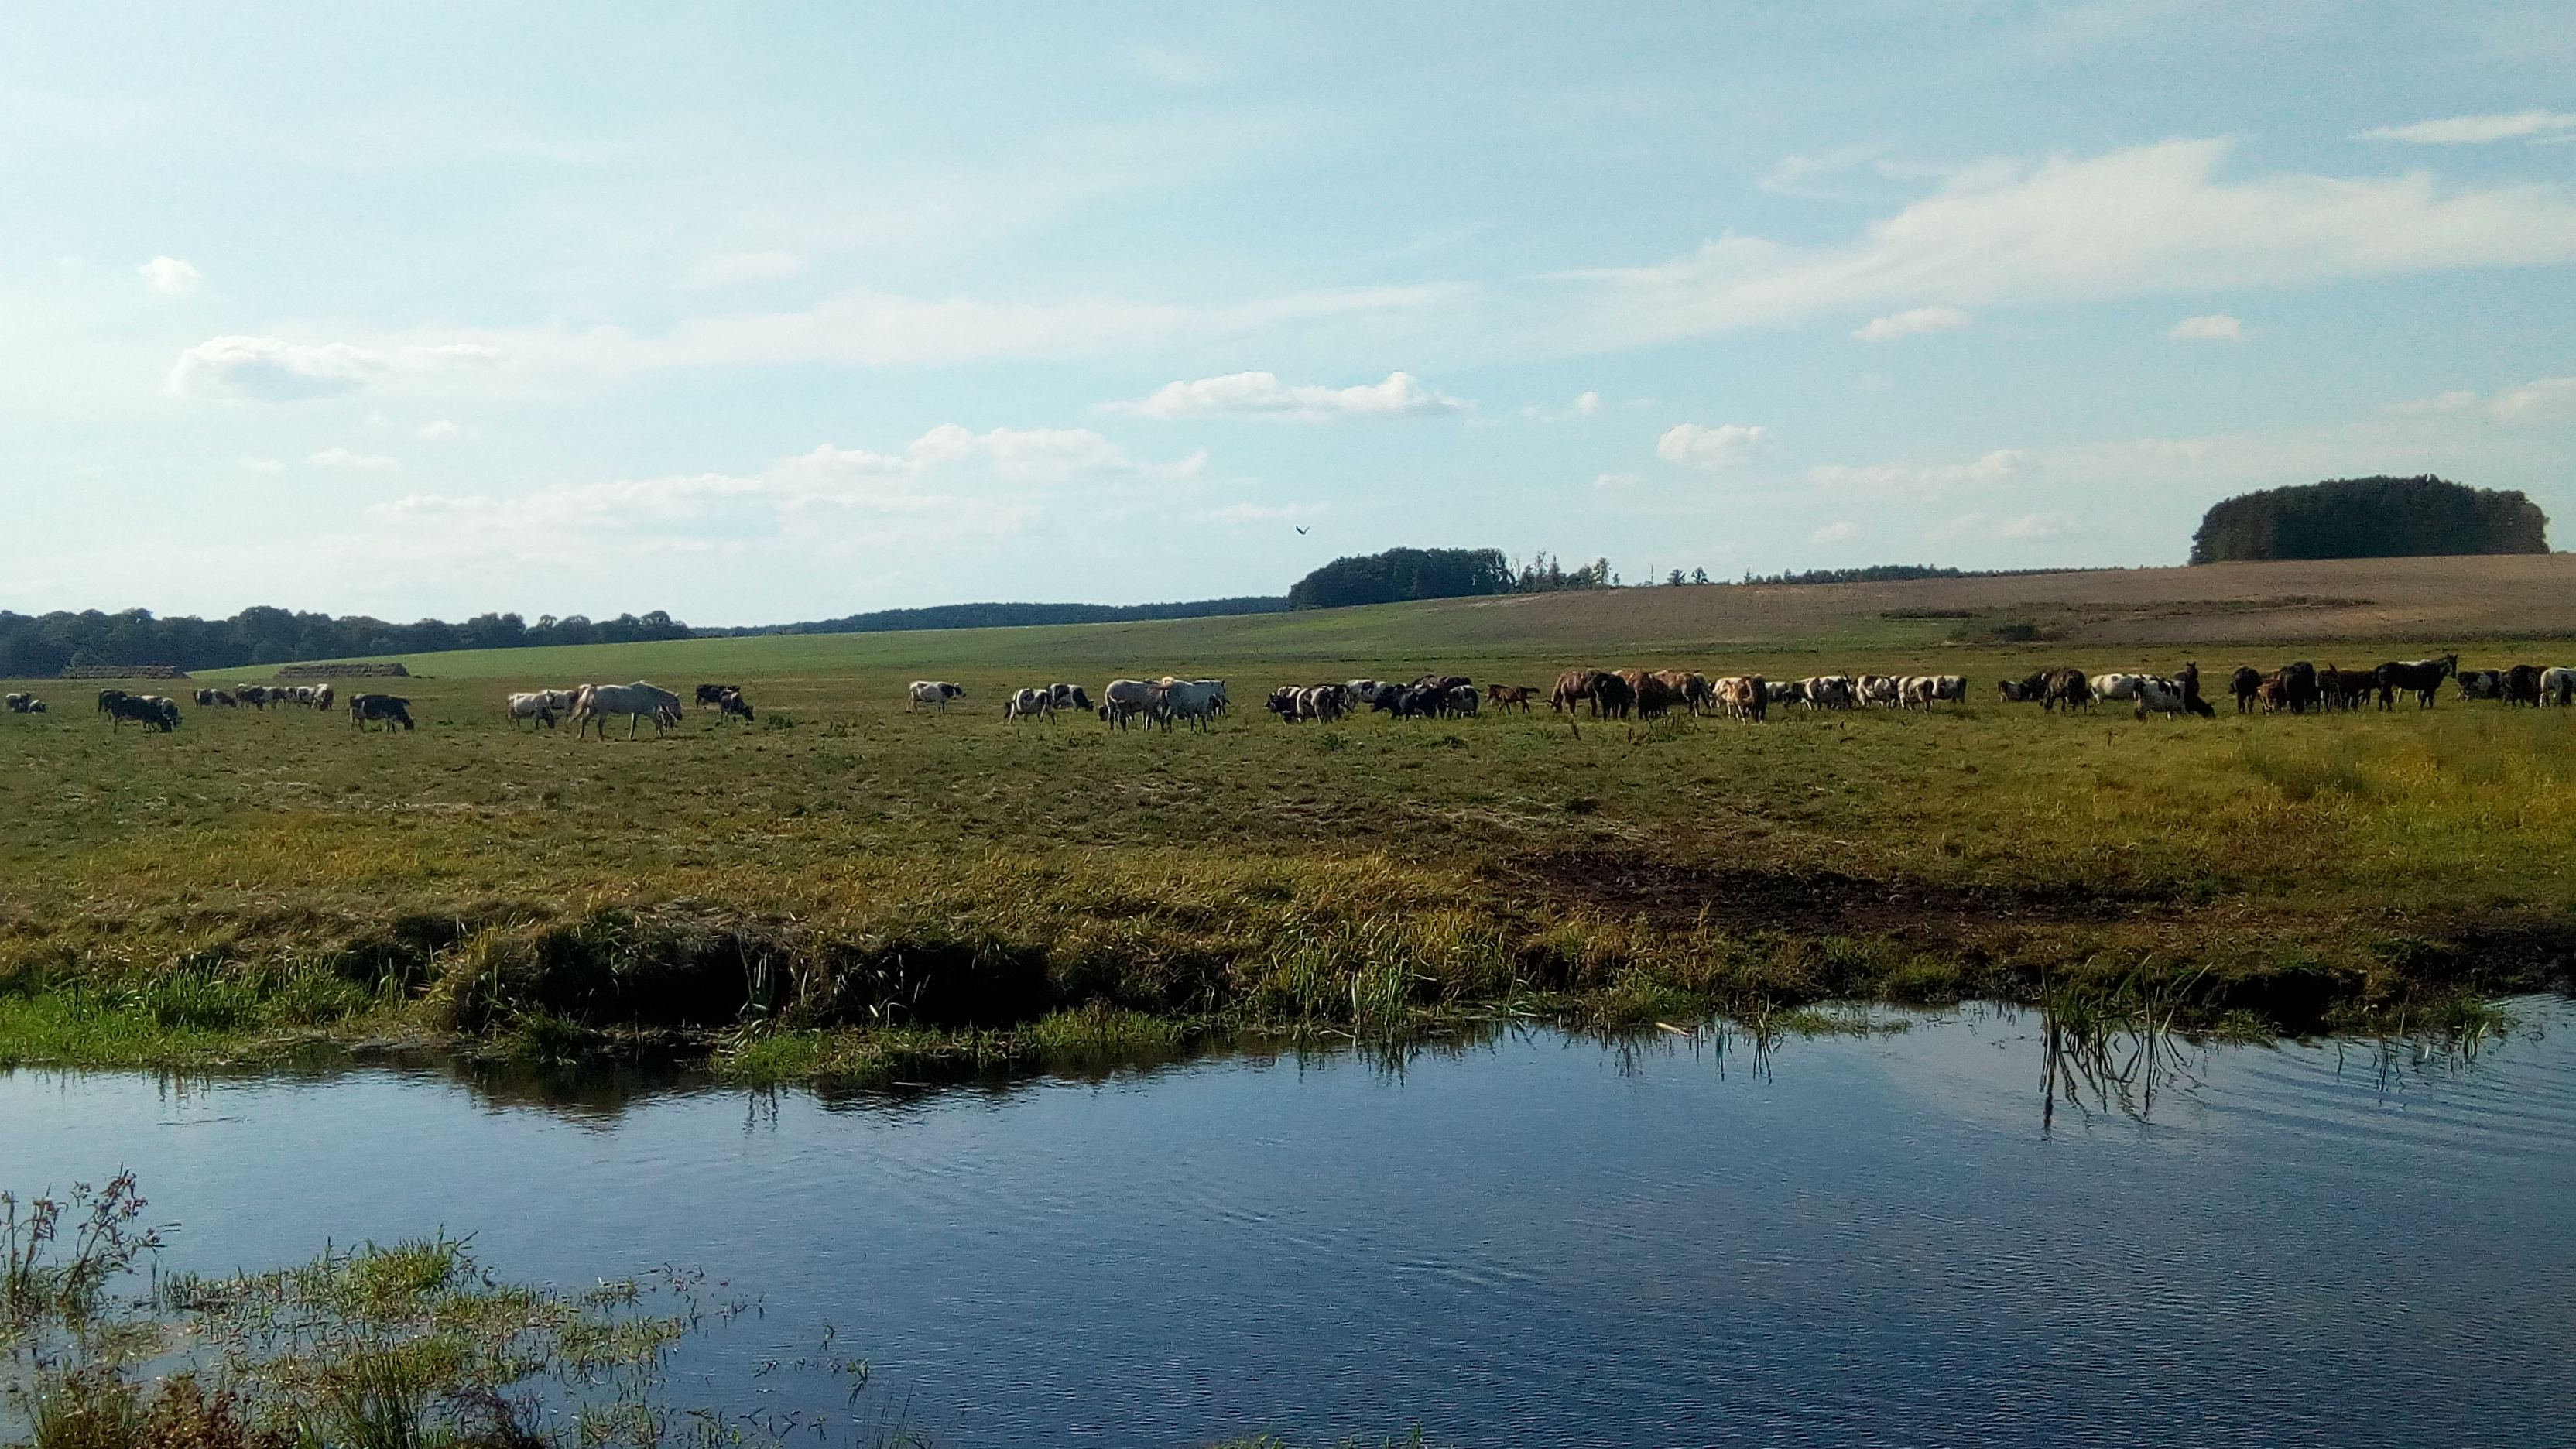 a-herd-of-animals-near-Zhirovichy-farm